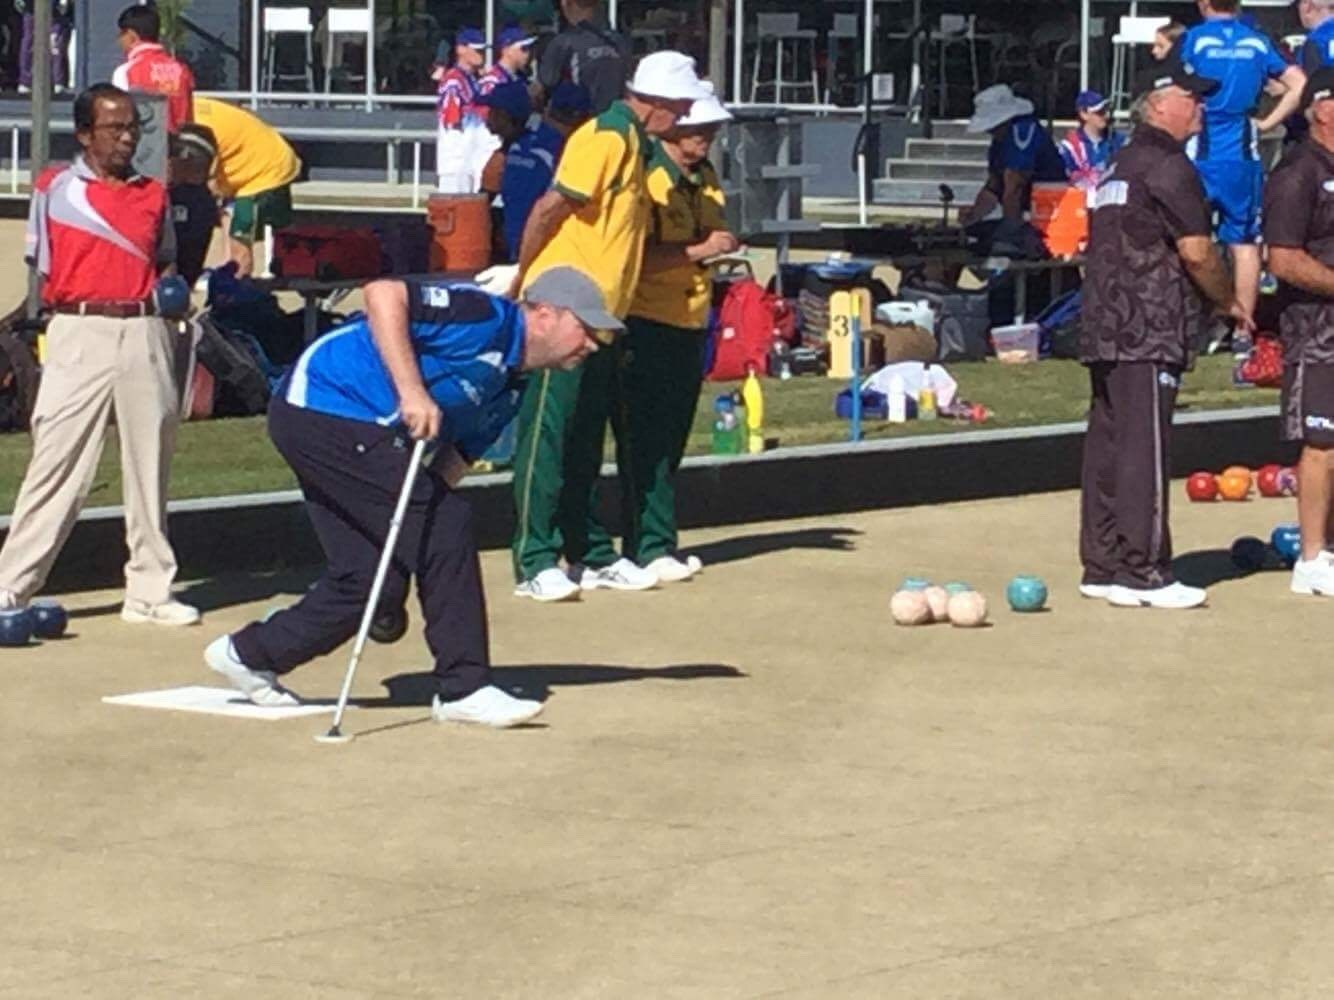 8 Nations Para Bowls Event - Day 2 Results